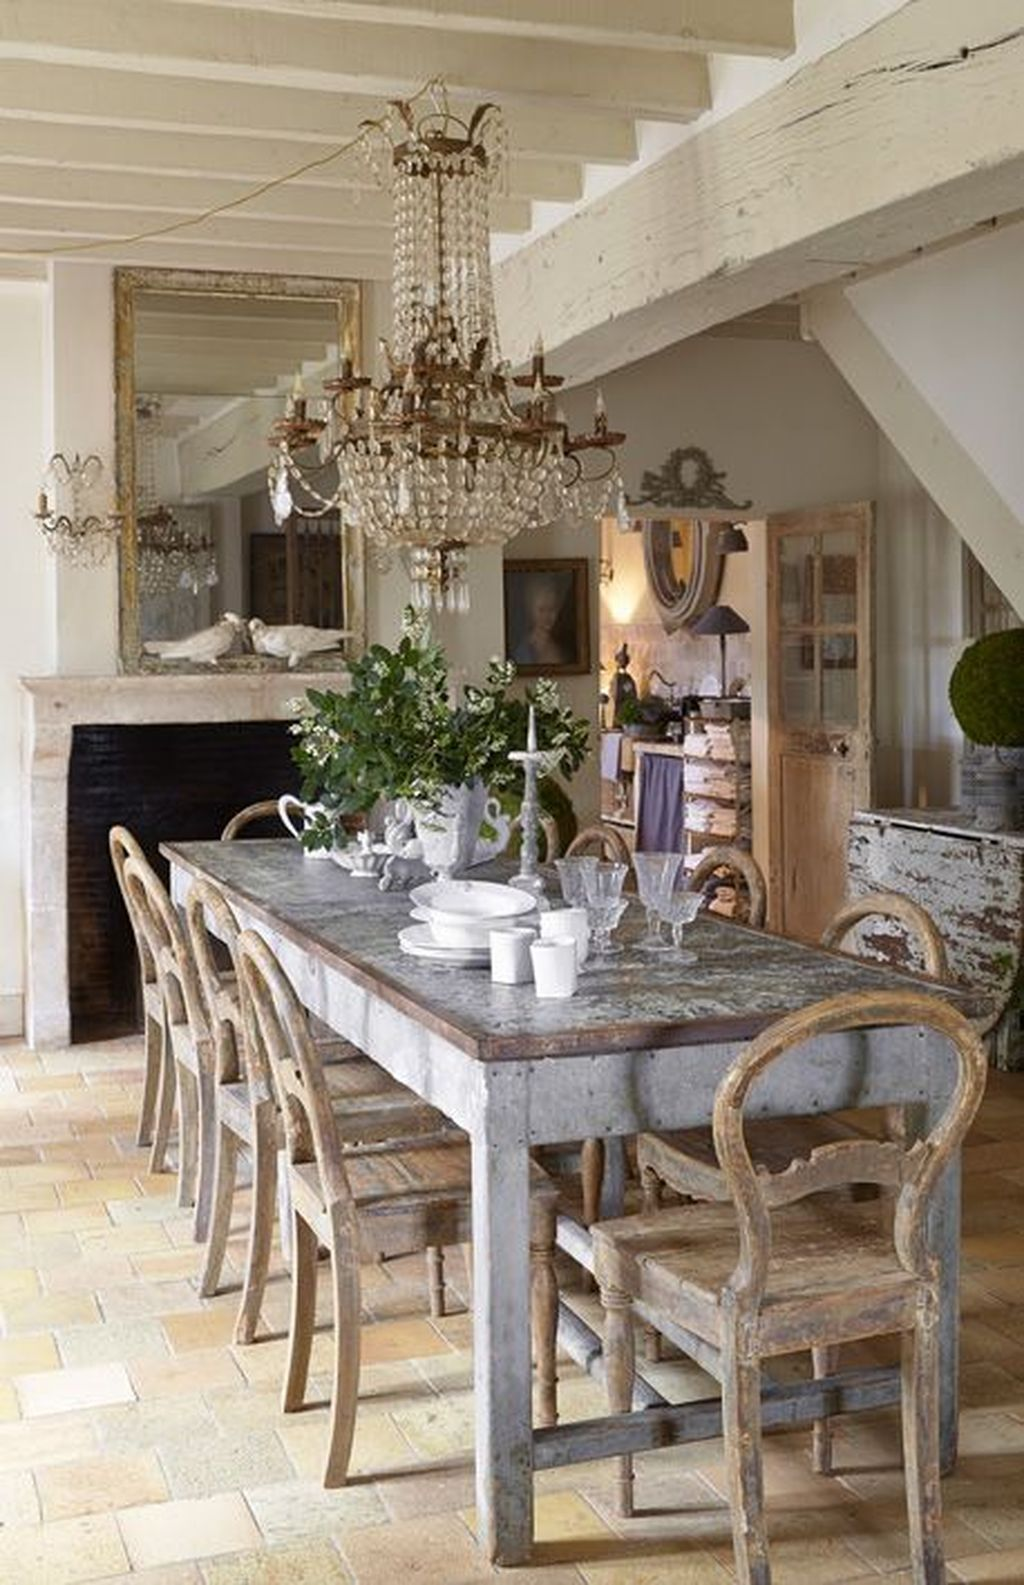 Romantic Dining Room: 50 Sweet Romantic Dining Room Decor